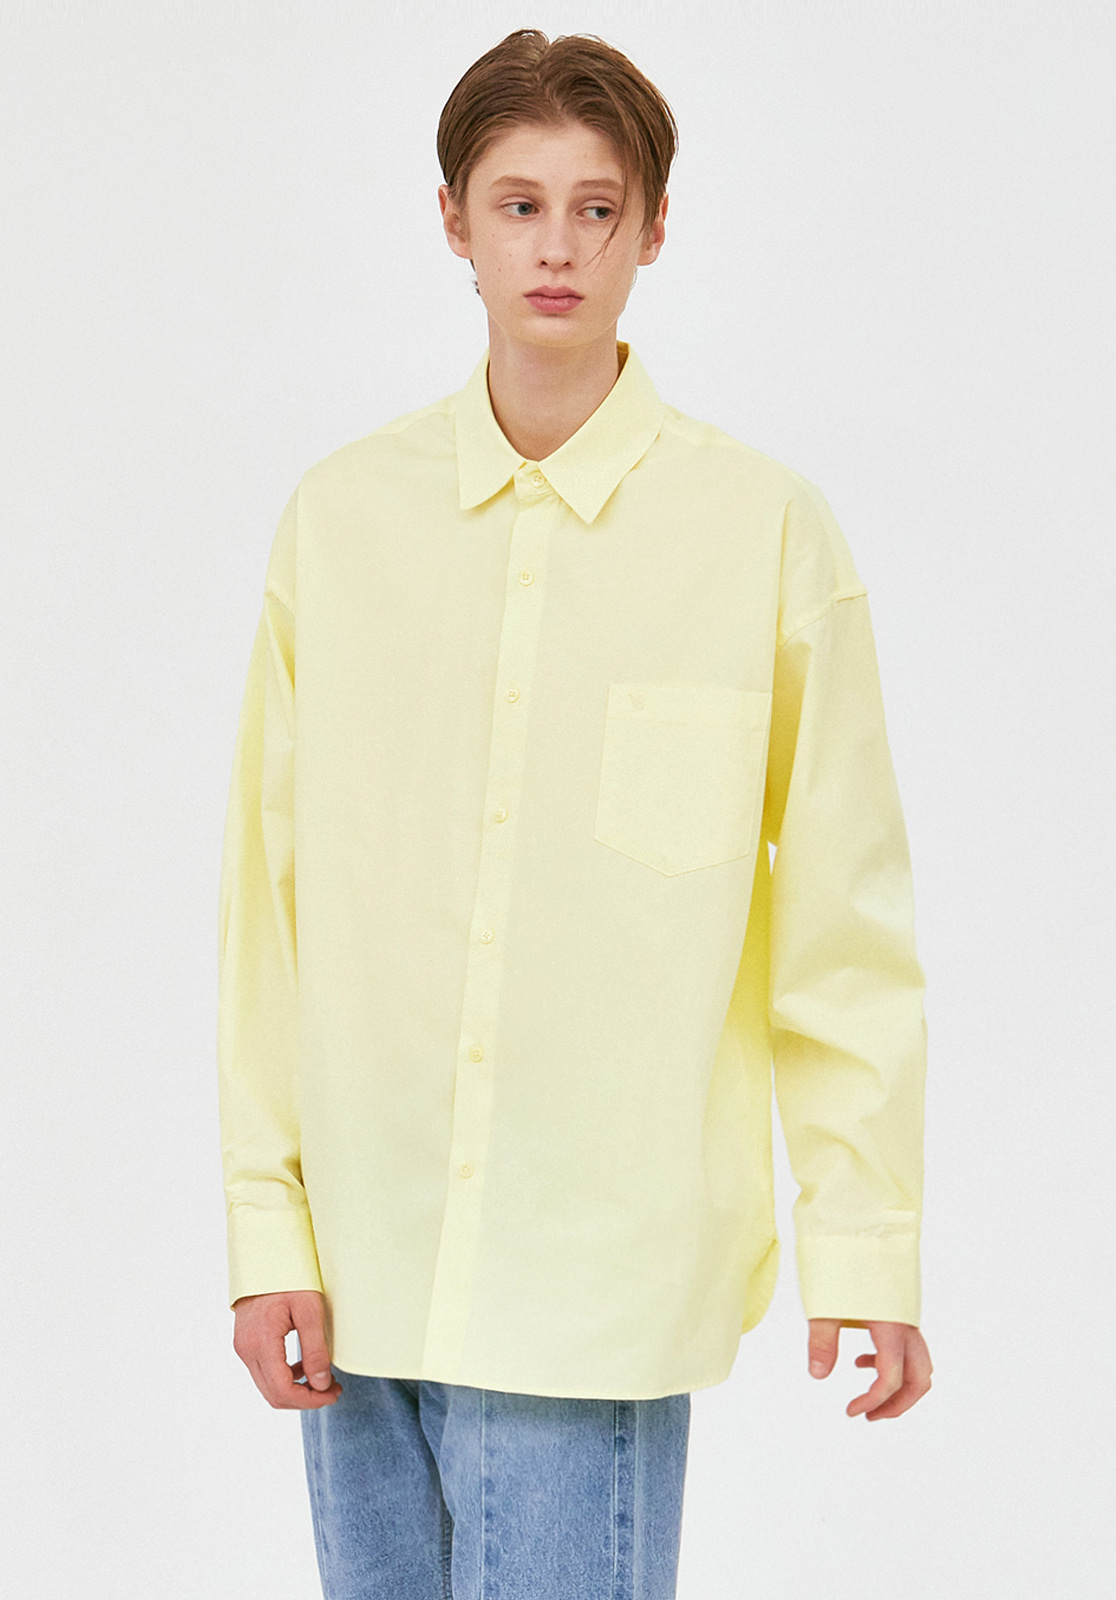 V457 MINIMAL POCKET OVERFIT SHIRTS  LIME